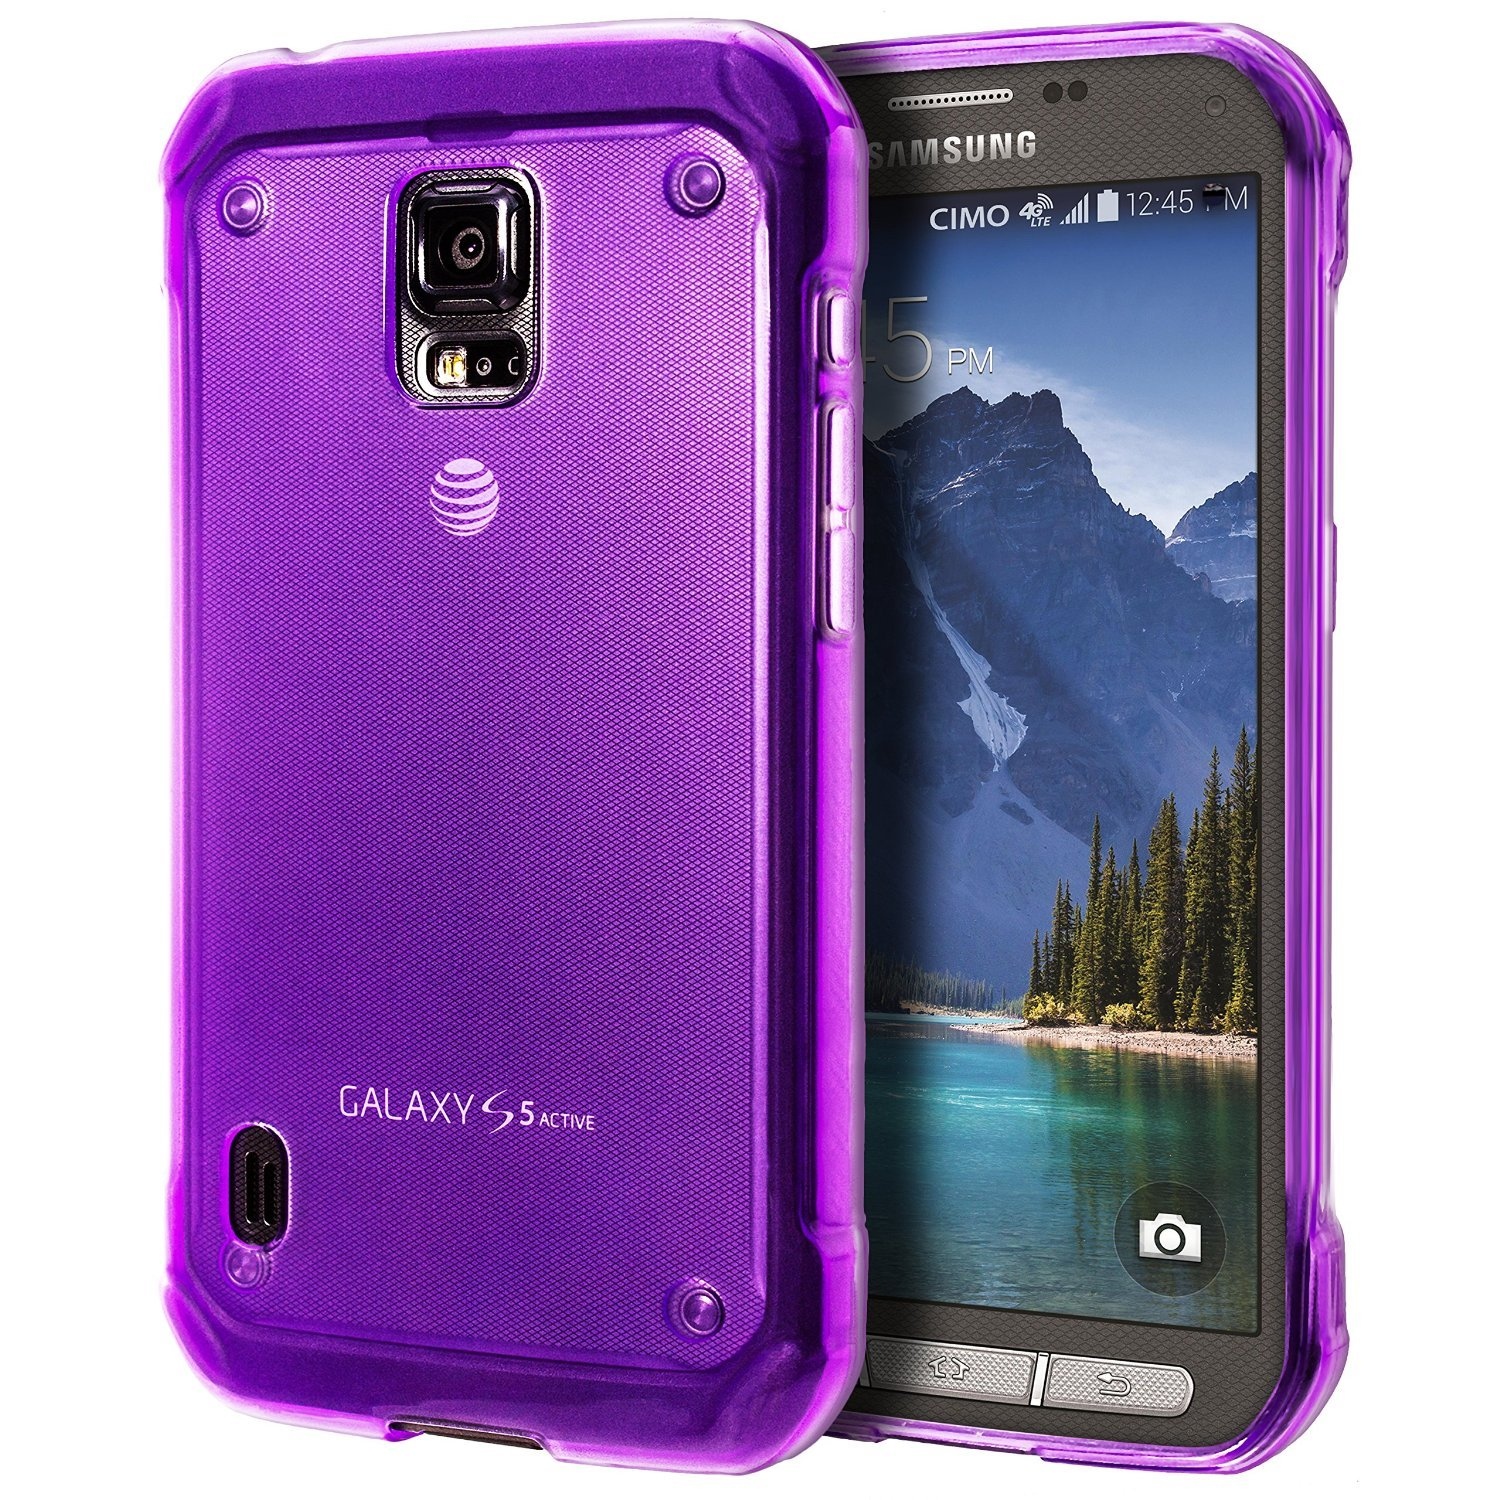 cimo grip premium slim tpu flexible soft case for samsung galaxy s 5 v 2014 purple. Black Bedroom Furniture Sets. Home Design Ideas